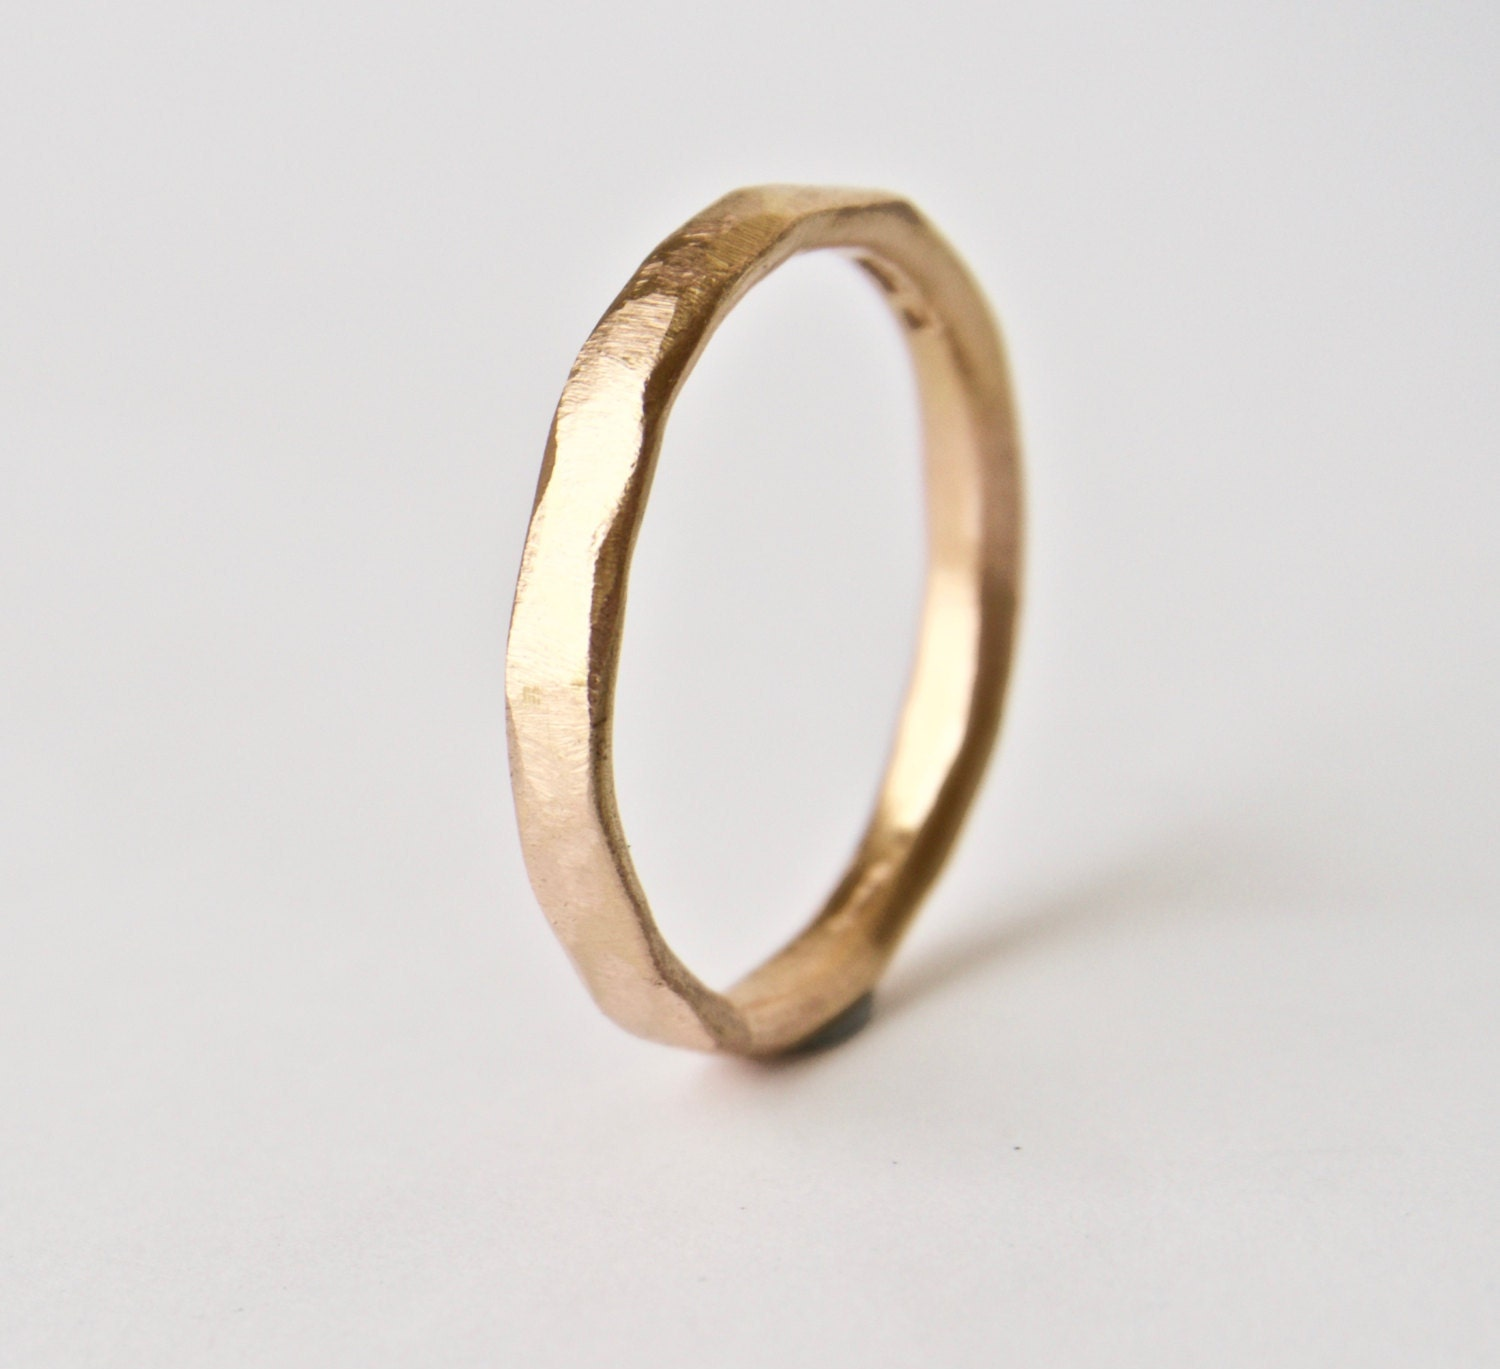 Rose Gold Ring Organic Grain Texture 18 Carat Thin Wedding